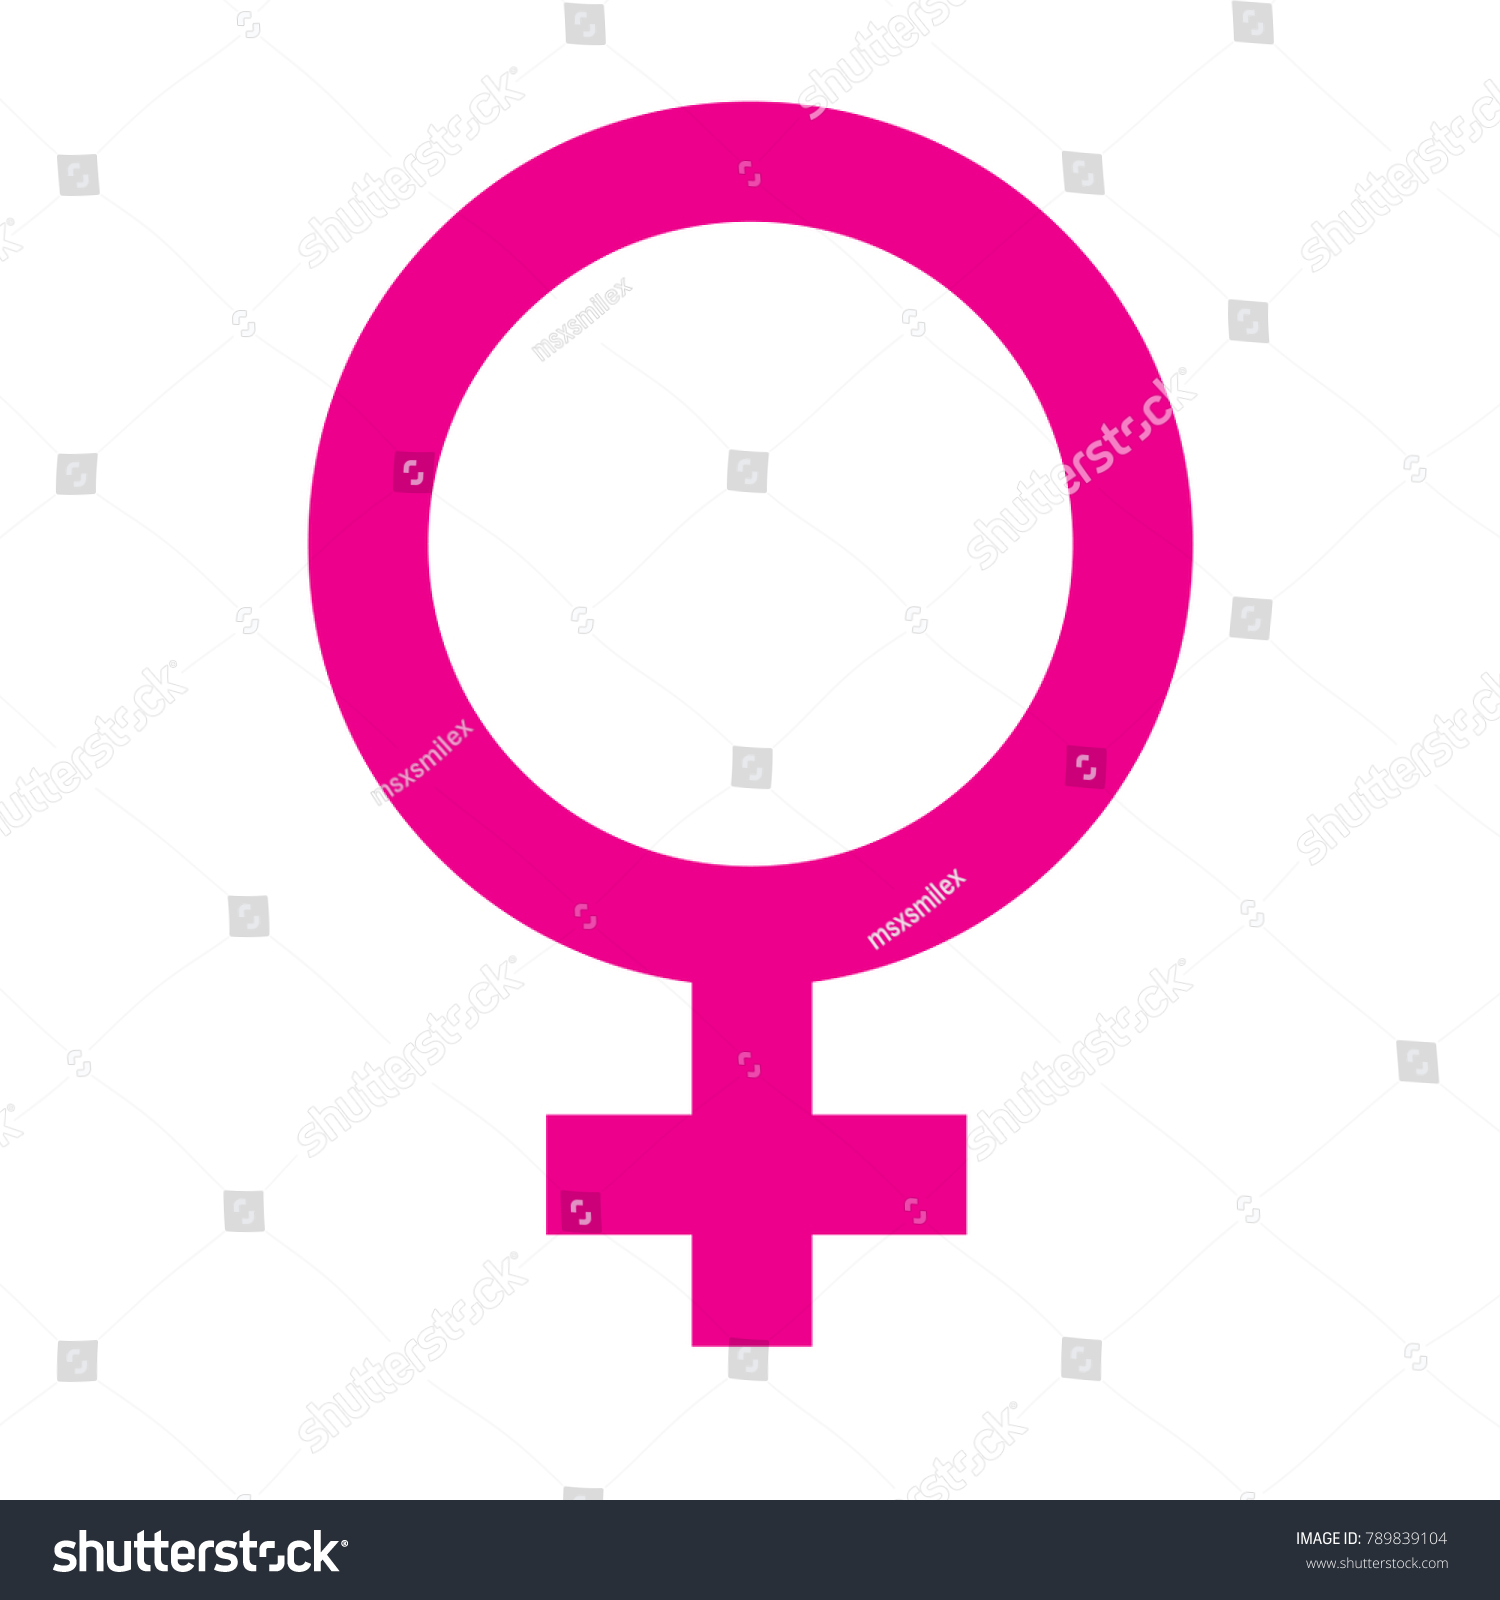 Female Gender Symbol Stock Vector Royalty Free 789839104